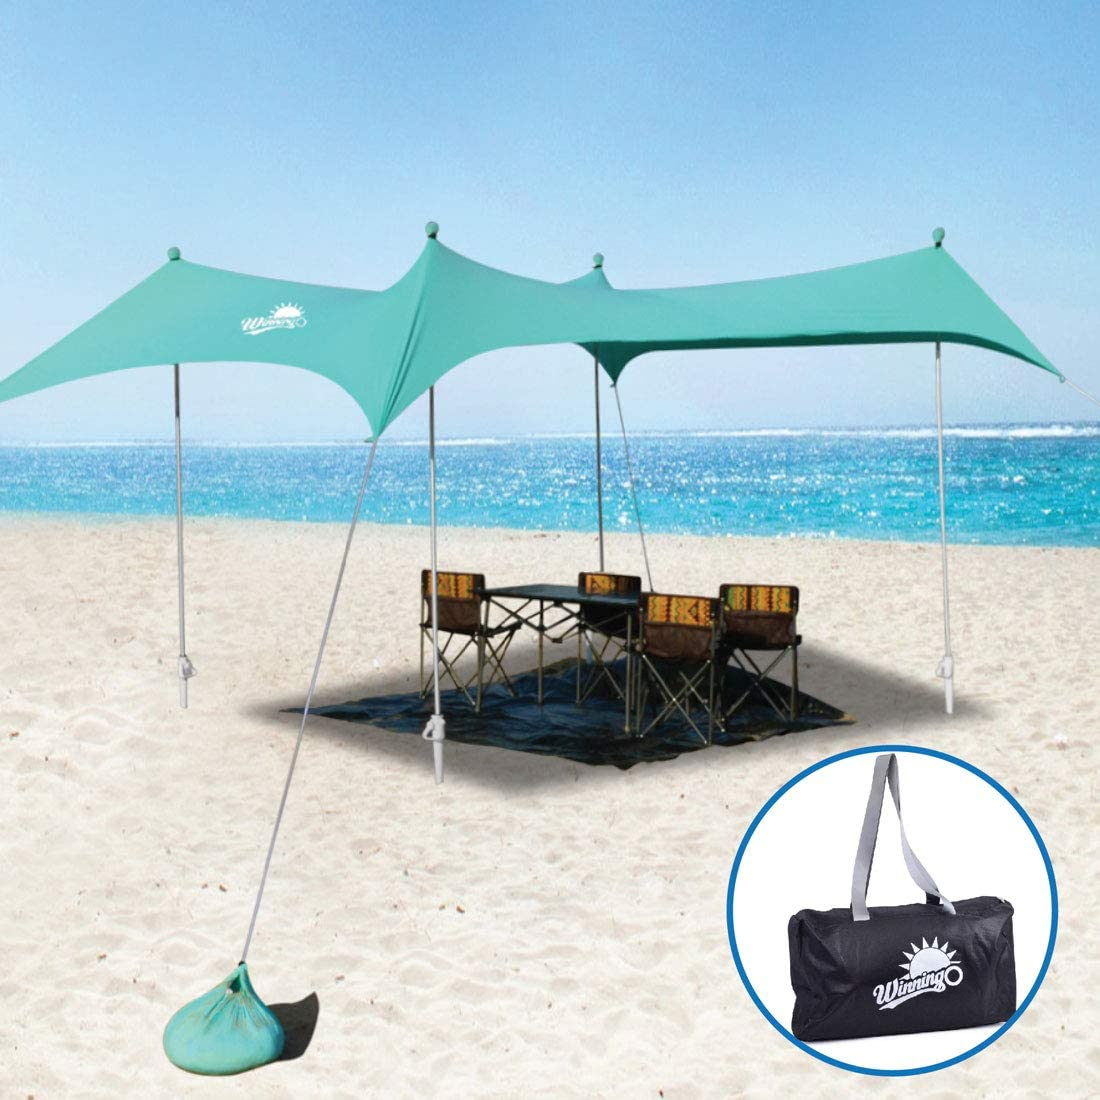 WINNINGO Premium Beach Sunshade, Upgraded Family Large Sun Shade Canopy 10 x 9 with 4 Aluminum Poles, 4 Pole Anchors, Waterproof Carry Bag and Bonus Tarp Mat, UPF50 UV Protection